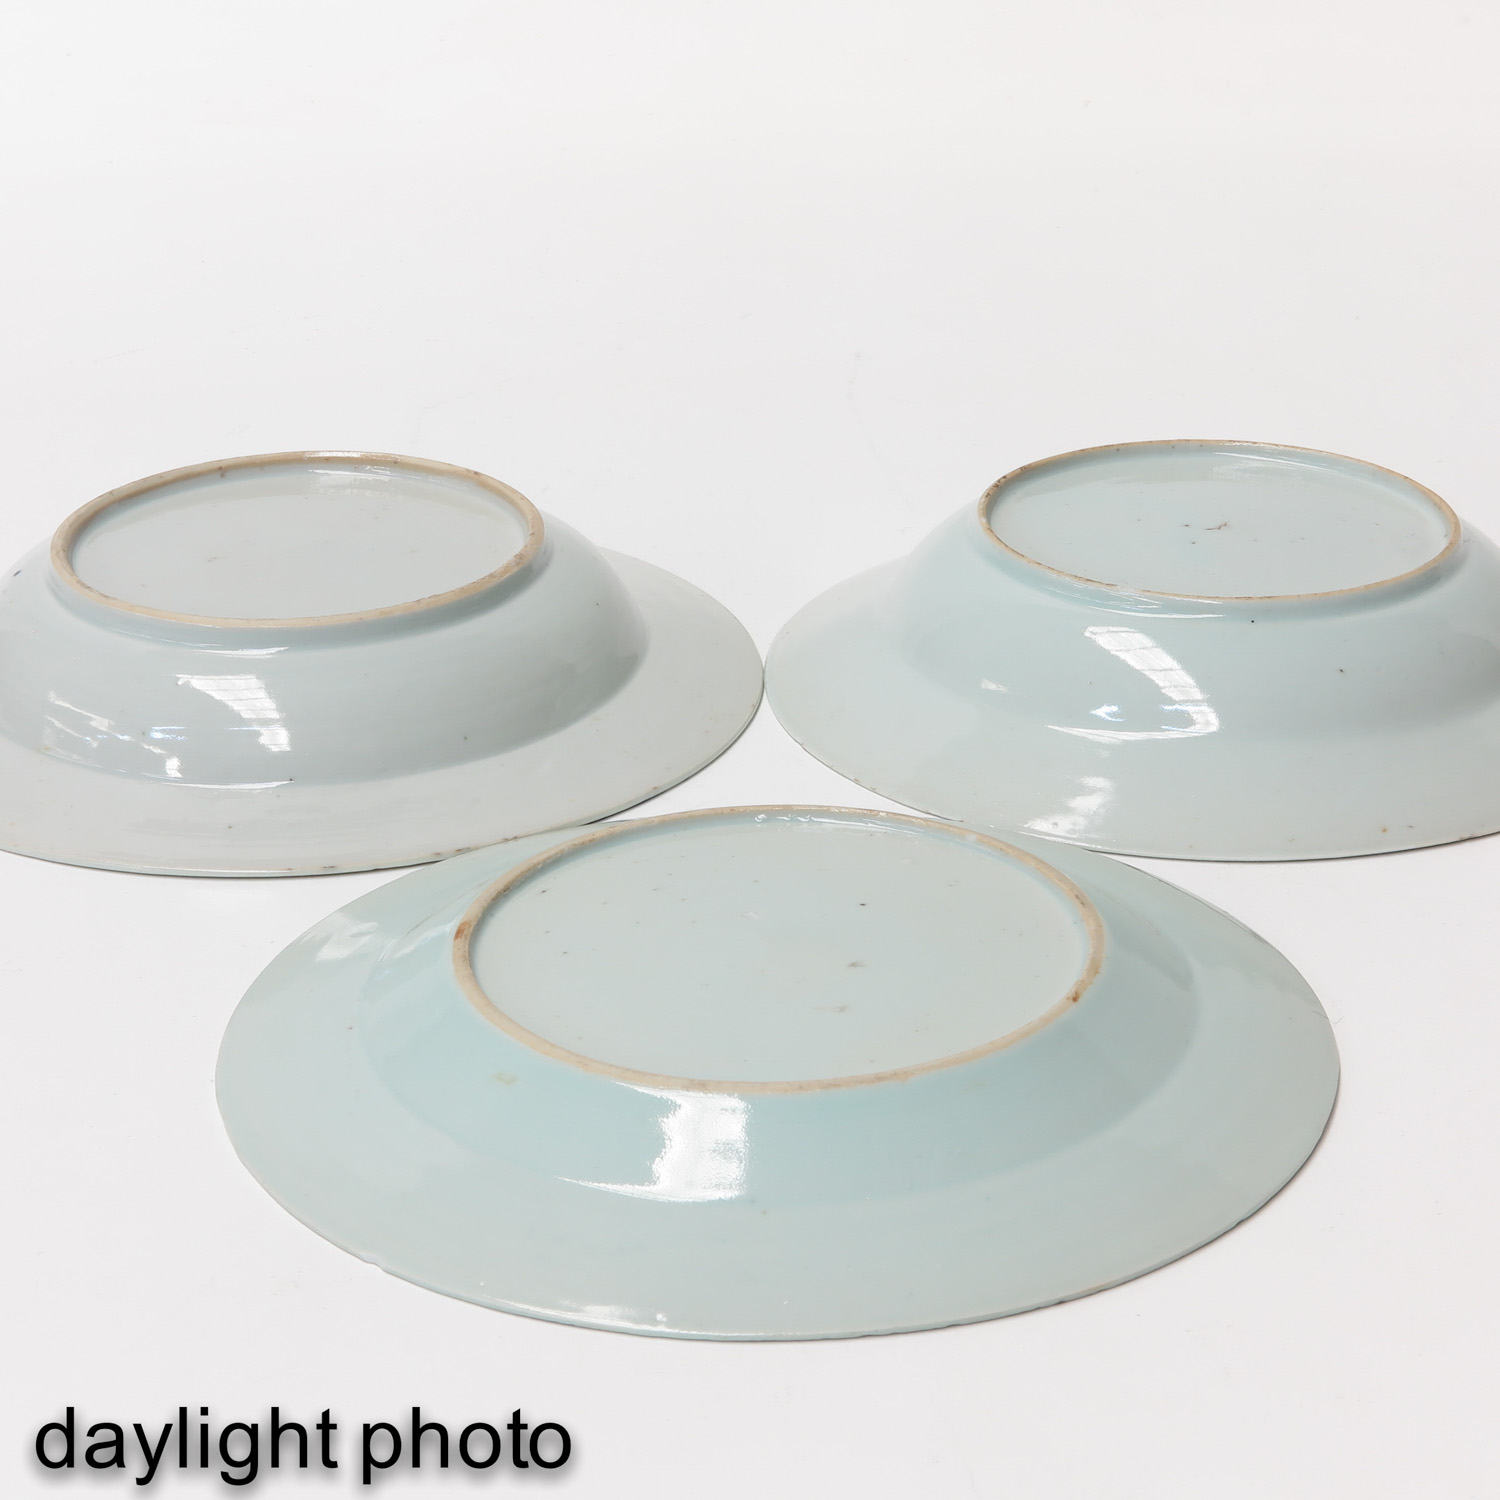 A Collection of 6 Blue and White Plates - Image 10 of 10